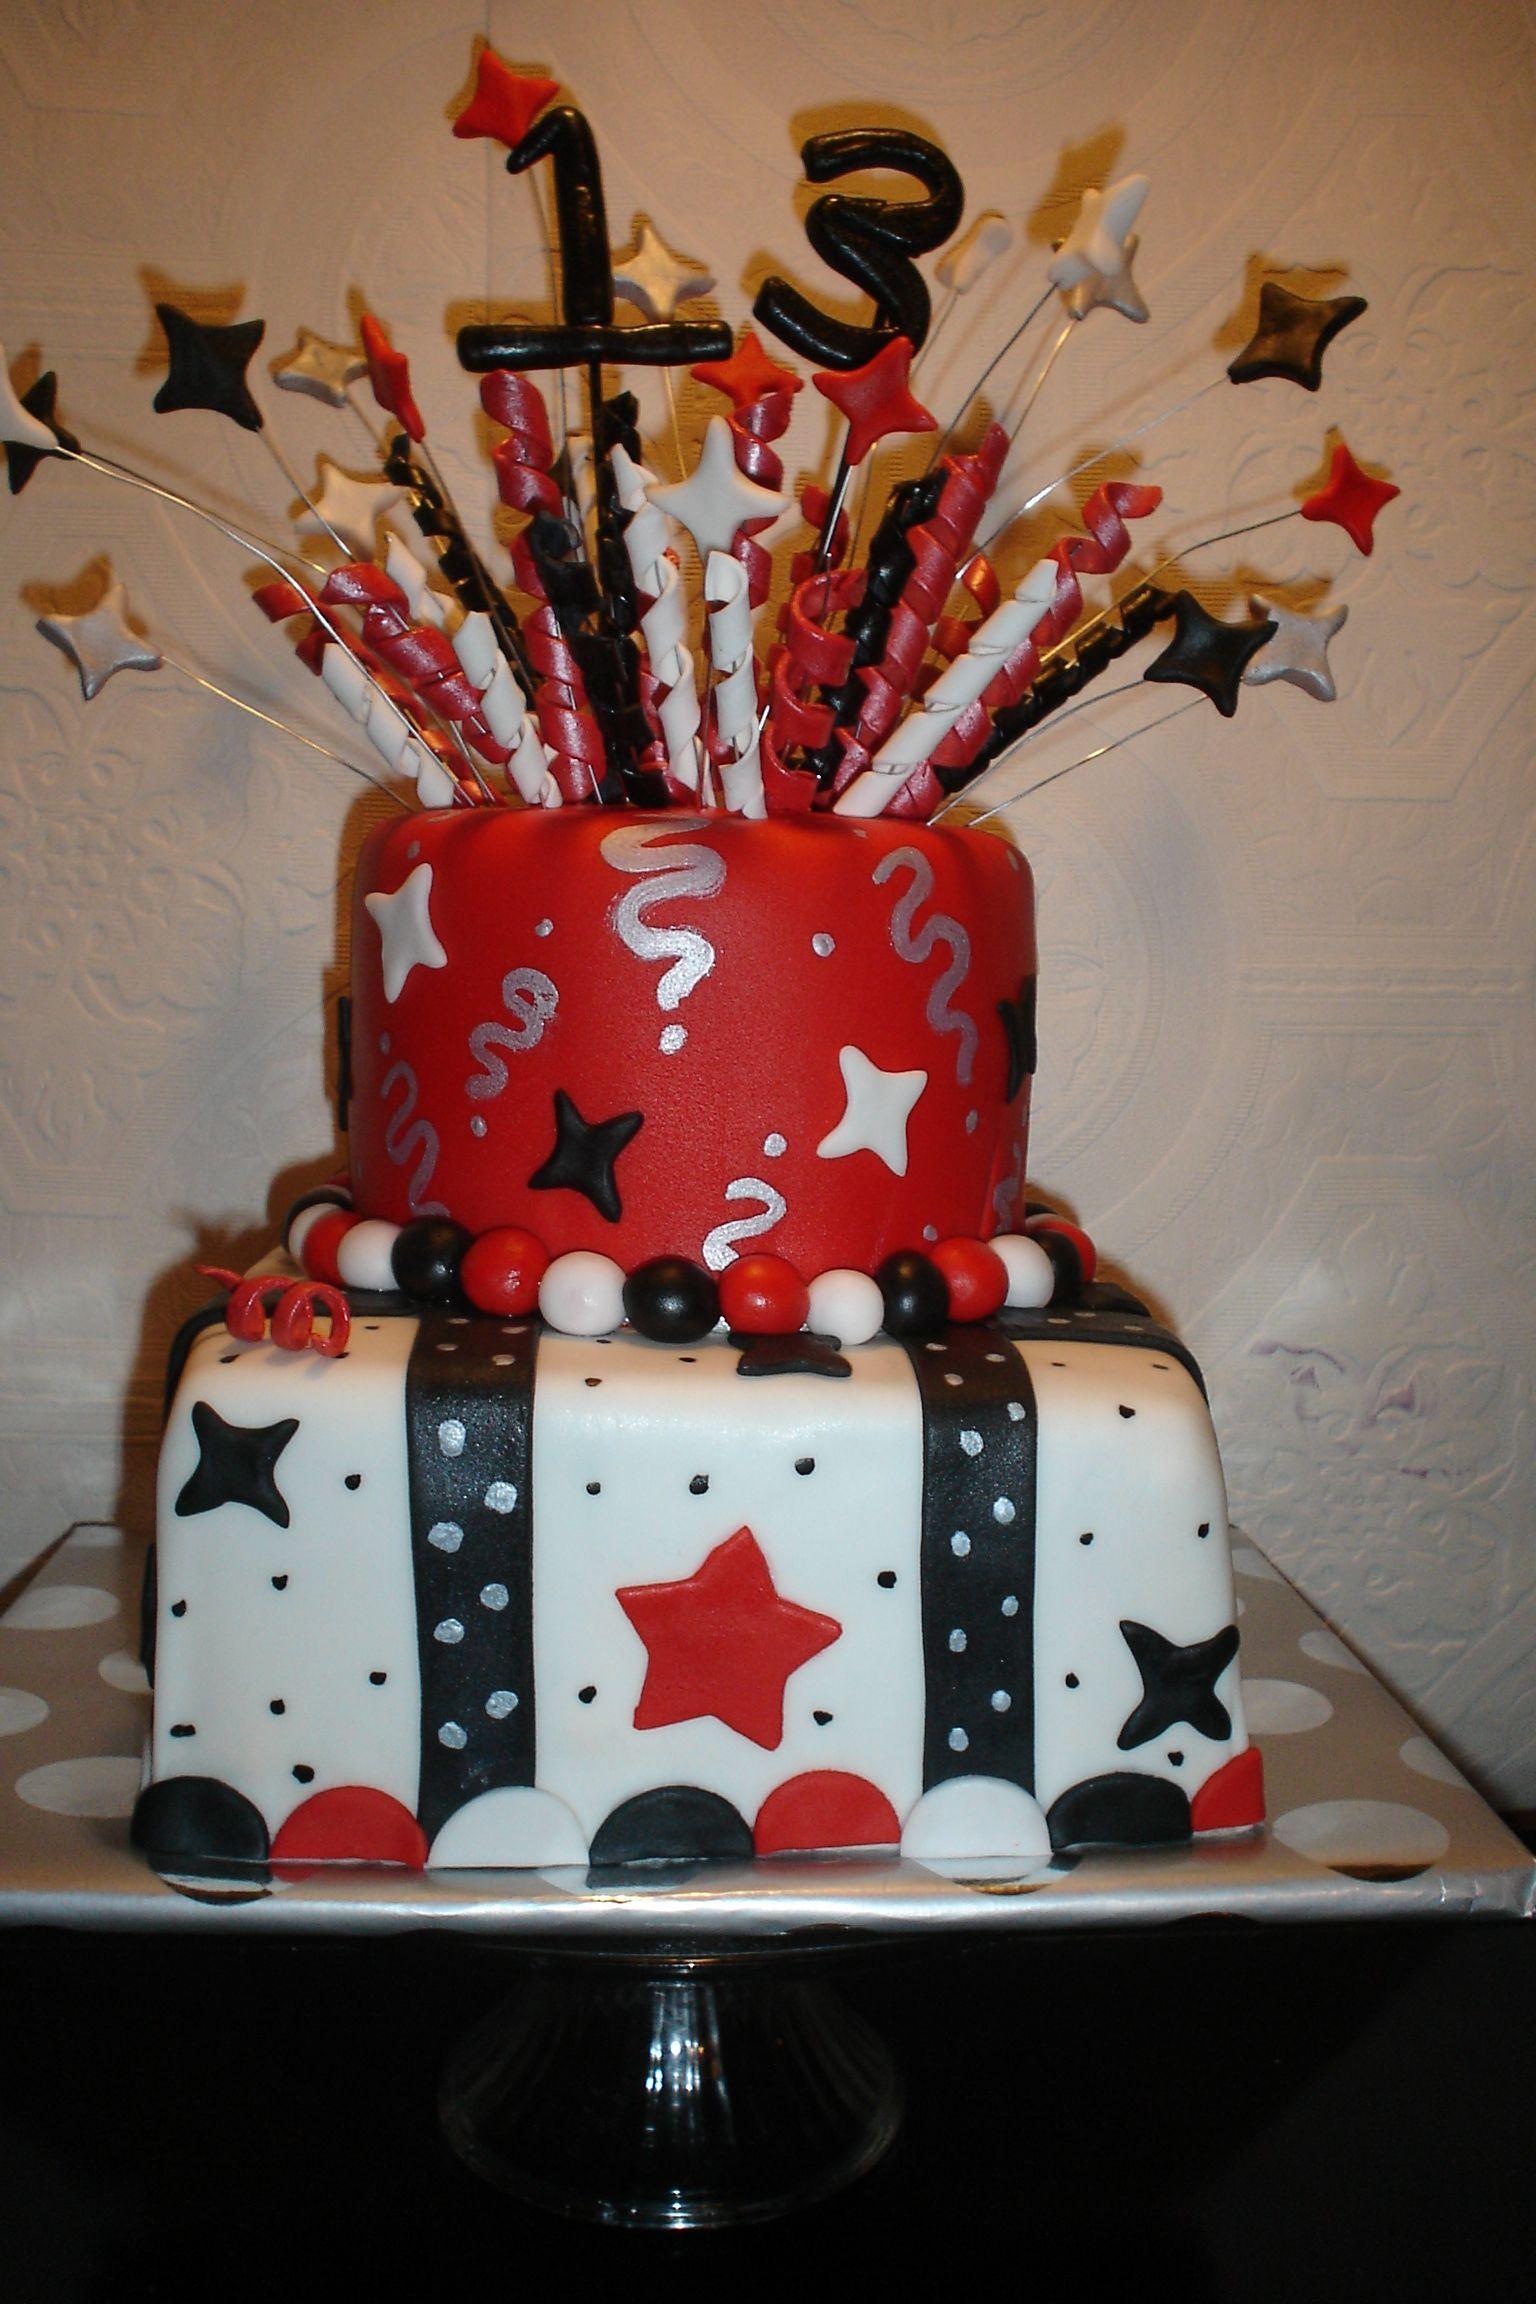 Firework Cakes Fireworks Cake Celebrate With Red White And Blue